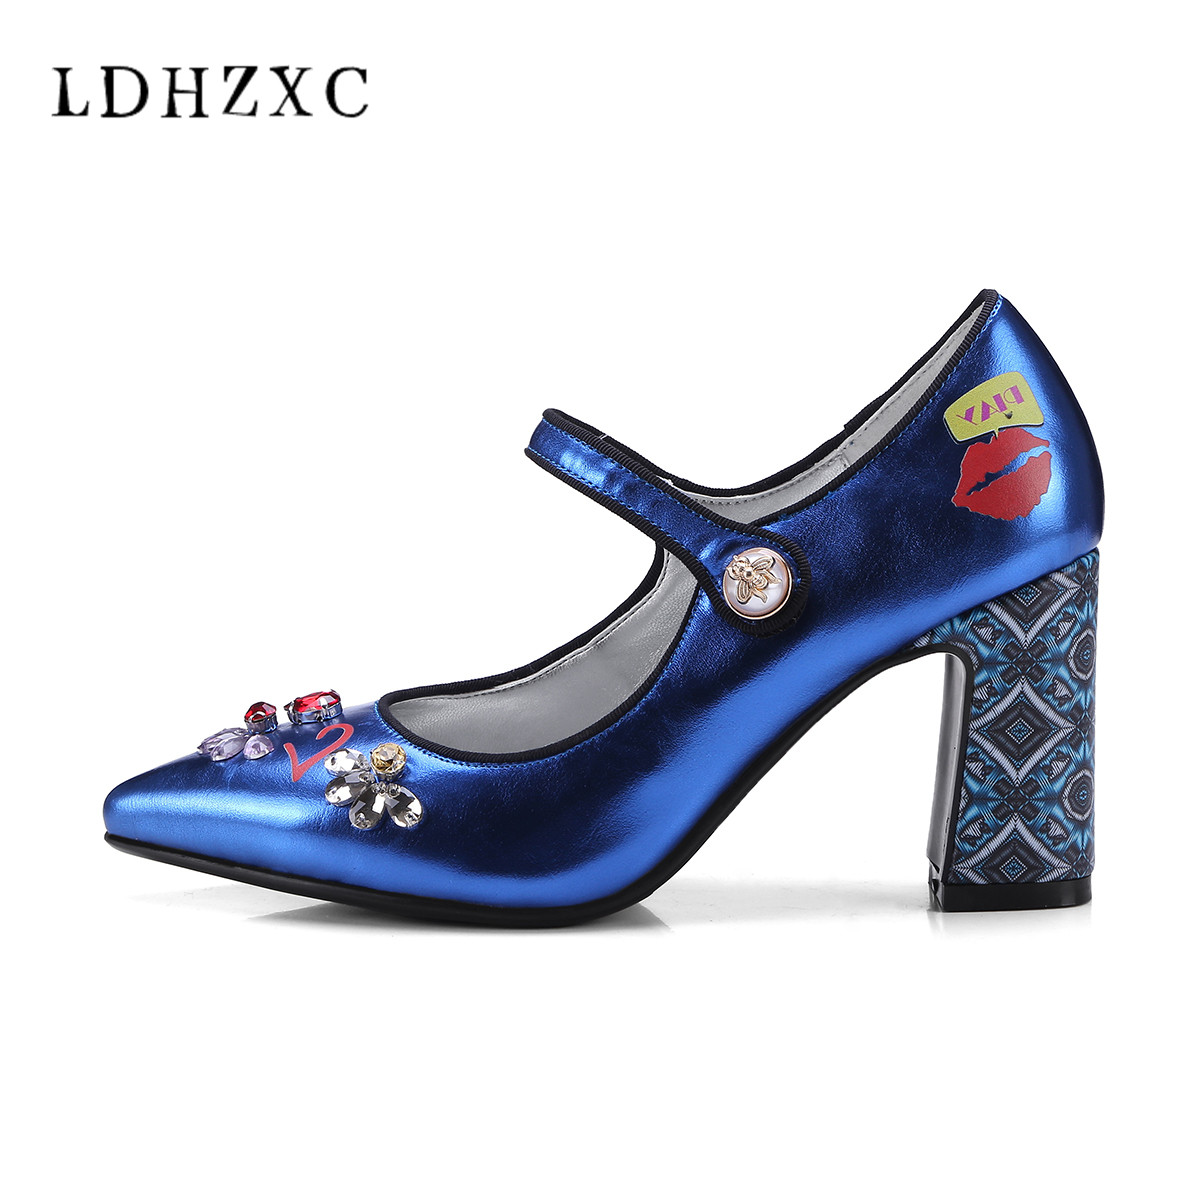 LDHZXC Women Mary Janes Pumps Sexy Pointed Toe Gladiator High Heels Shoes Woman Blue Genuine Leather Stilettos Shoes Woman Pumps mary janes shoes woman genuine leather strange style women heels pumps pointed toe shoes string bead spring autumn women shoes